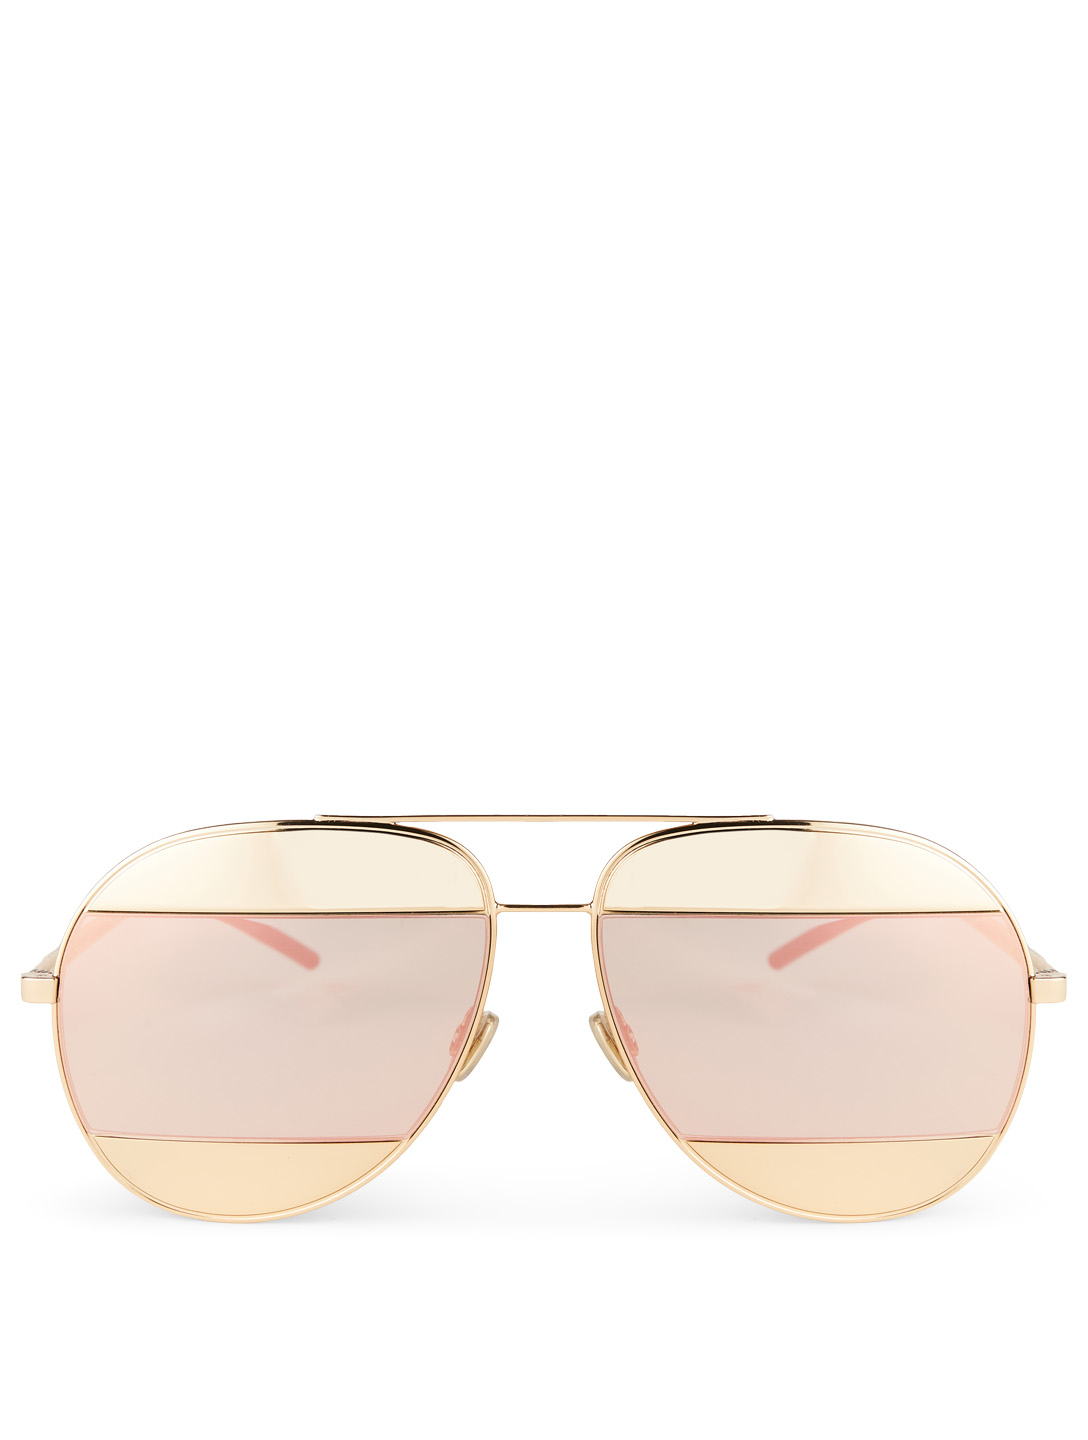 DIOR DiorSplit1 Aviator Sunglasses Women's Metallic